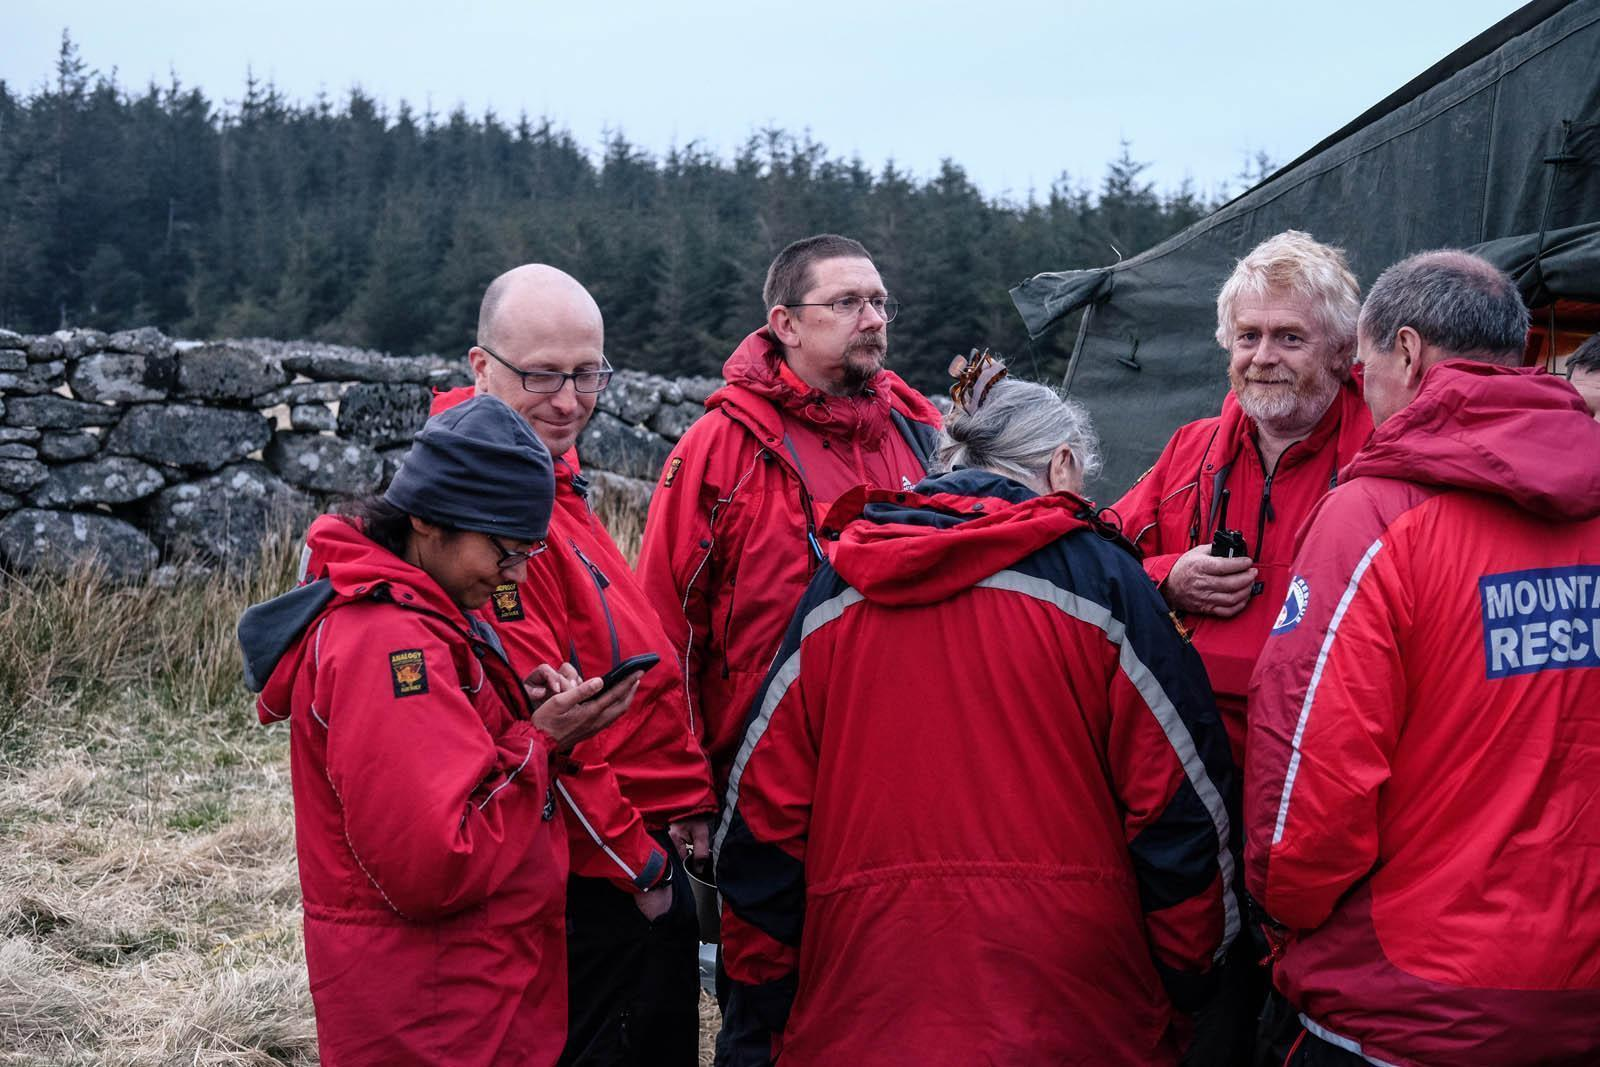 One key element about Dartmoor Search and Rescue Ashburton is that we are an organisation of volunteers that relies on the valued time and effort of its team members to provide our essential service free of charge to those in need.